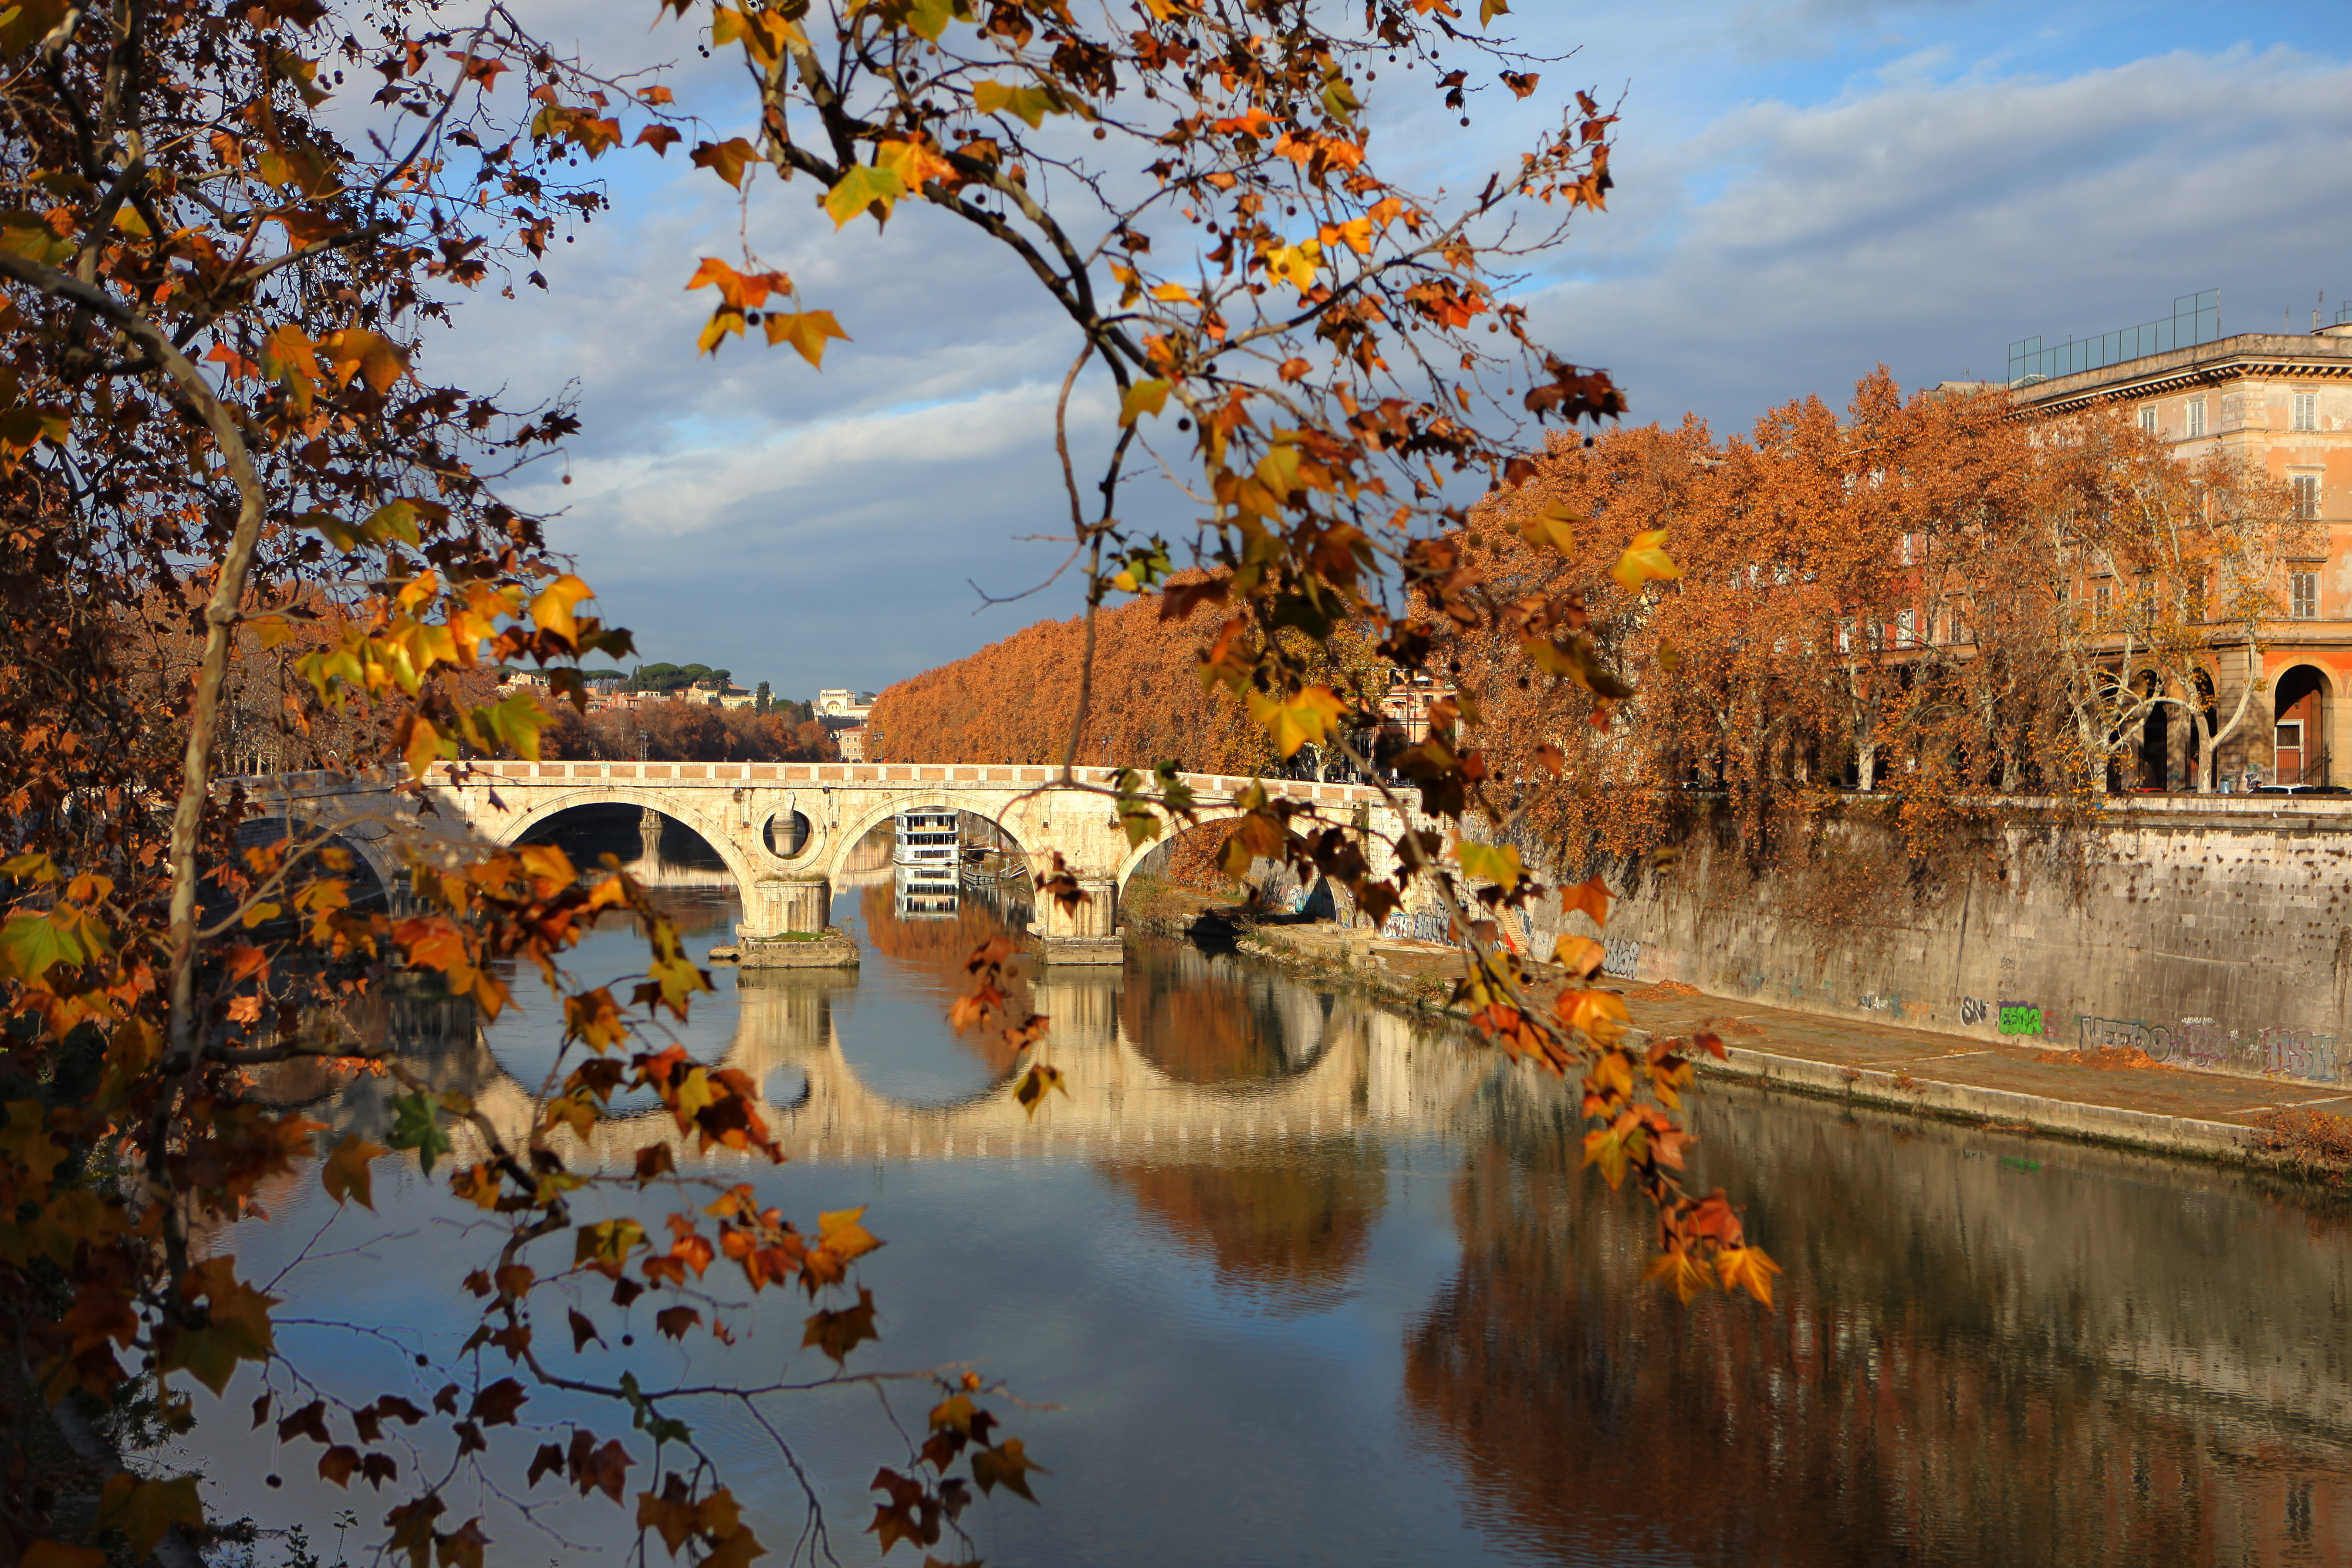 The Ponte Sisto is reflected in the River Tiber on a warm Autumn morning on December 10, 2017 in Rome, Italy.